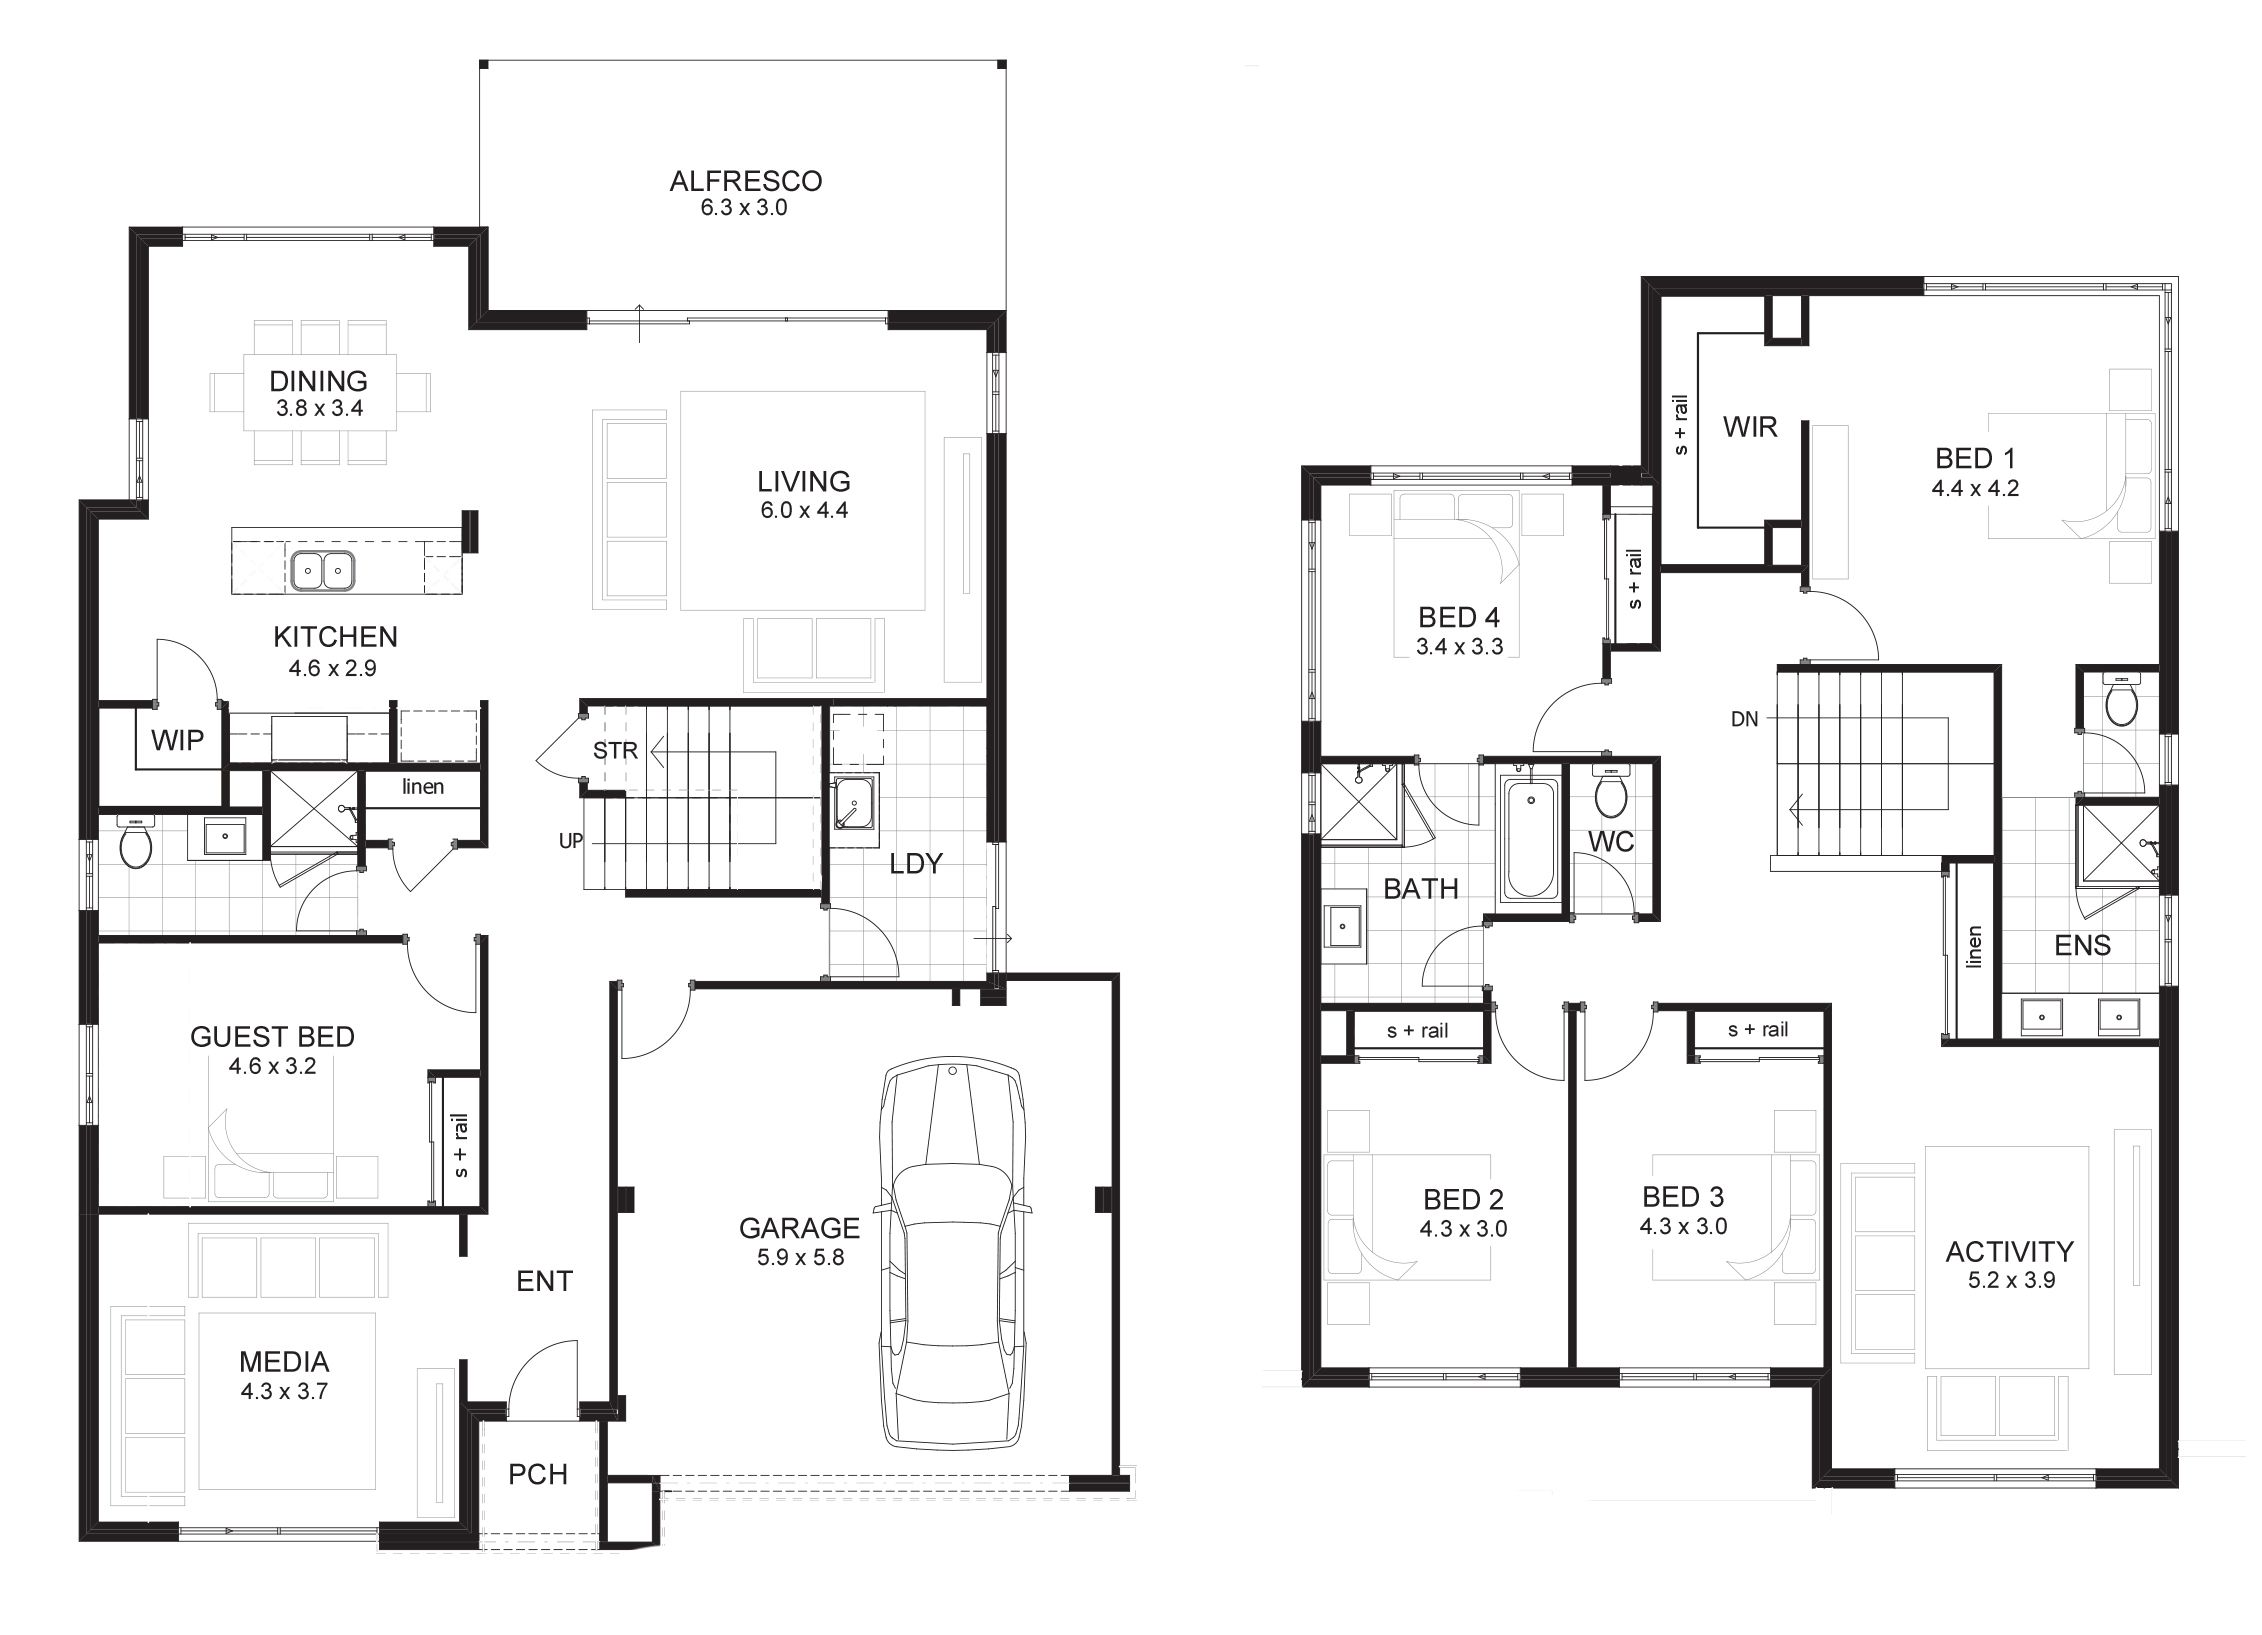 6 Bedroom House Plans Perth Pinterest